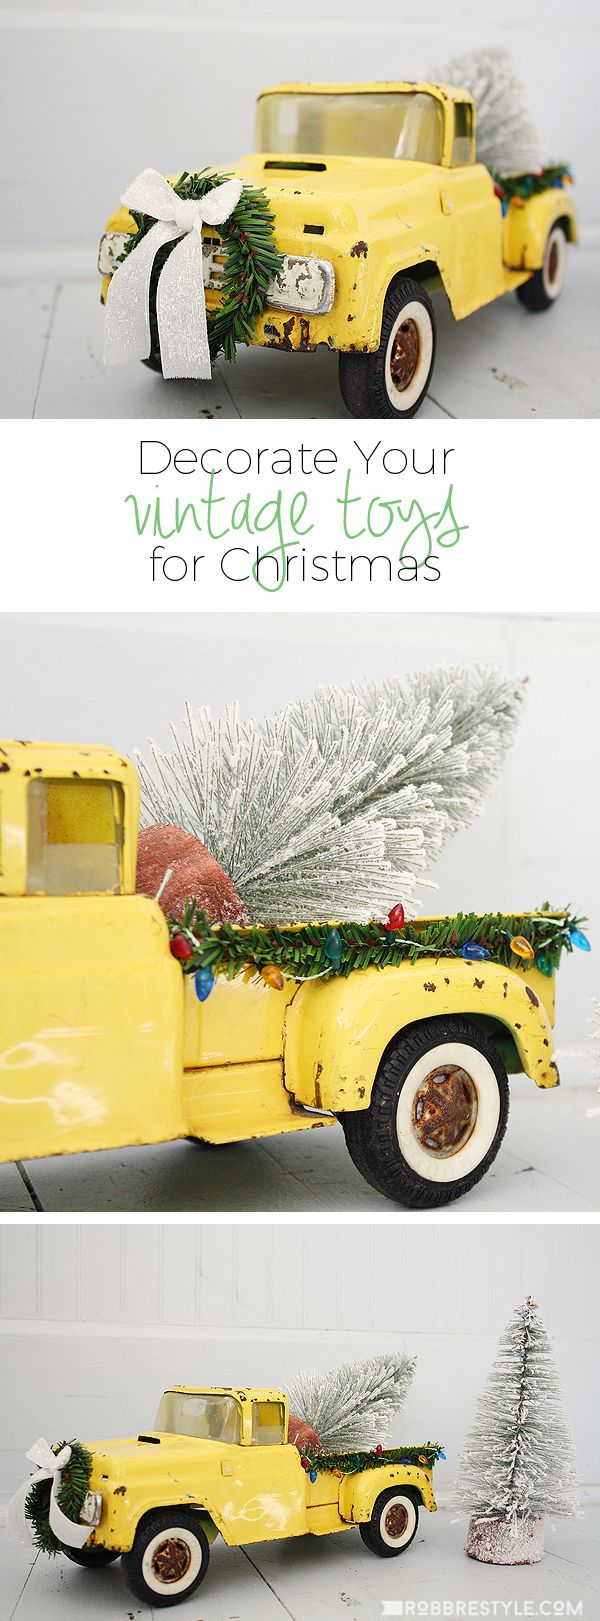 Decorate your vintage toys for your Christmas decor. Just add trees to the back and some holiday trimmings.